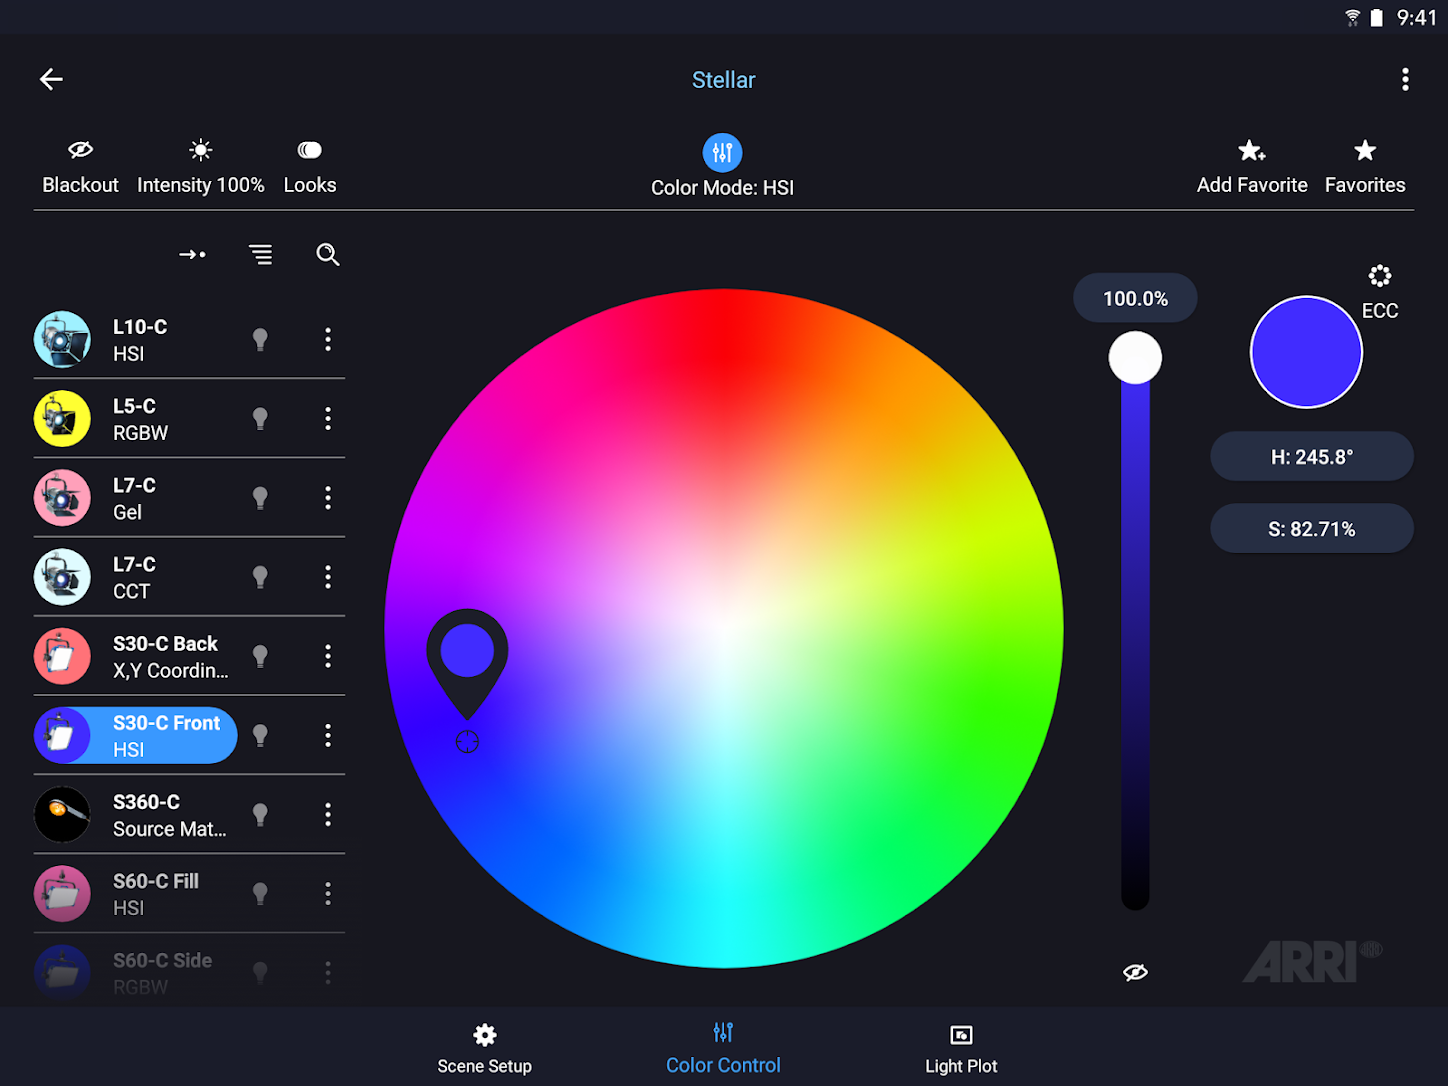 ARRI's Stellar App 1.7 for lighting control brings improvements and new functions